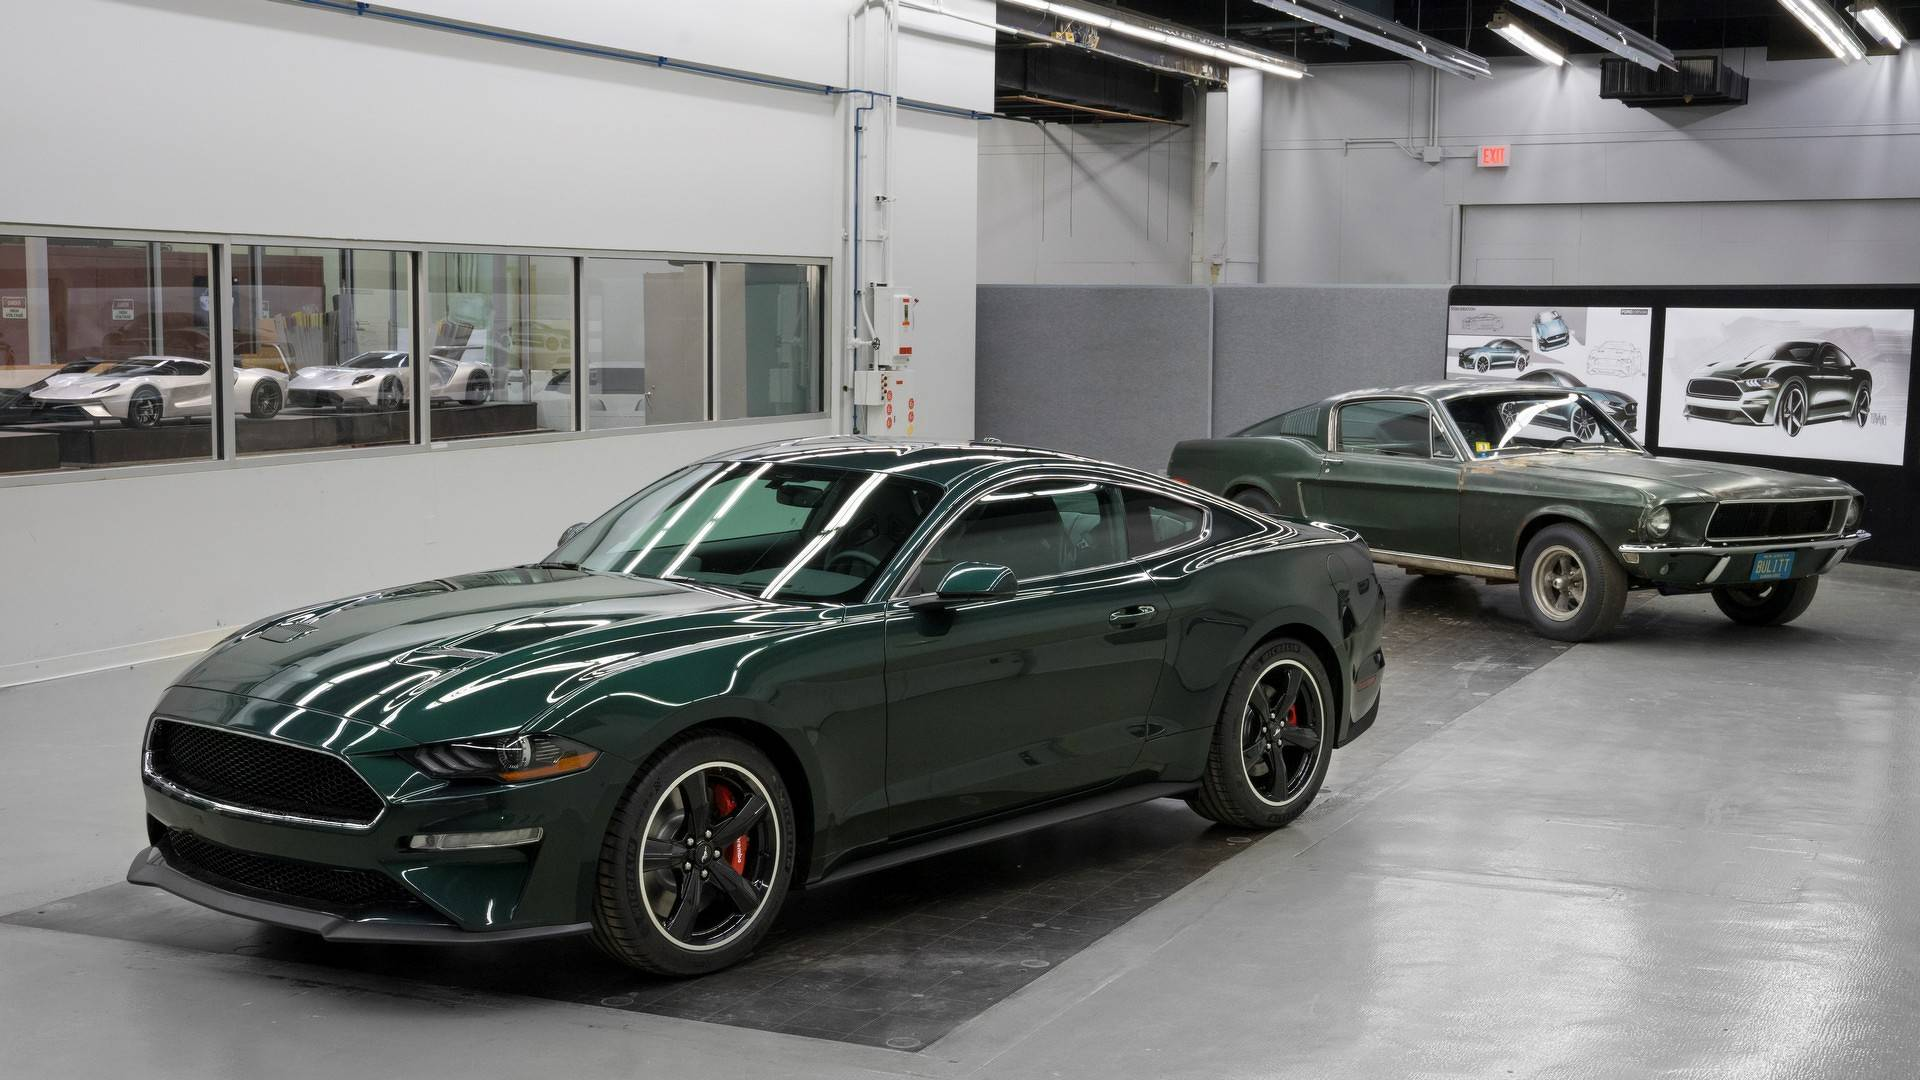 Original mustang from bullitt added to historic vehicle register